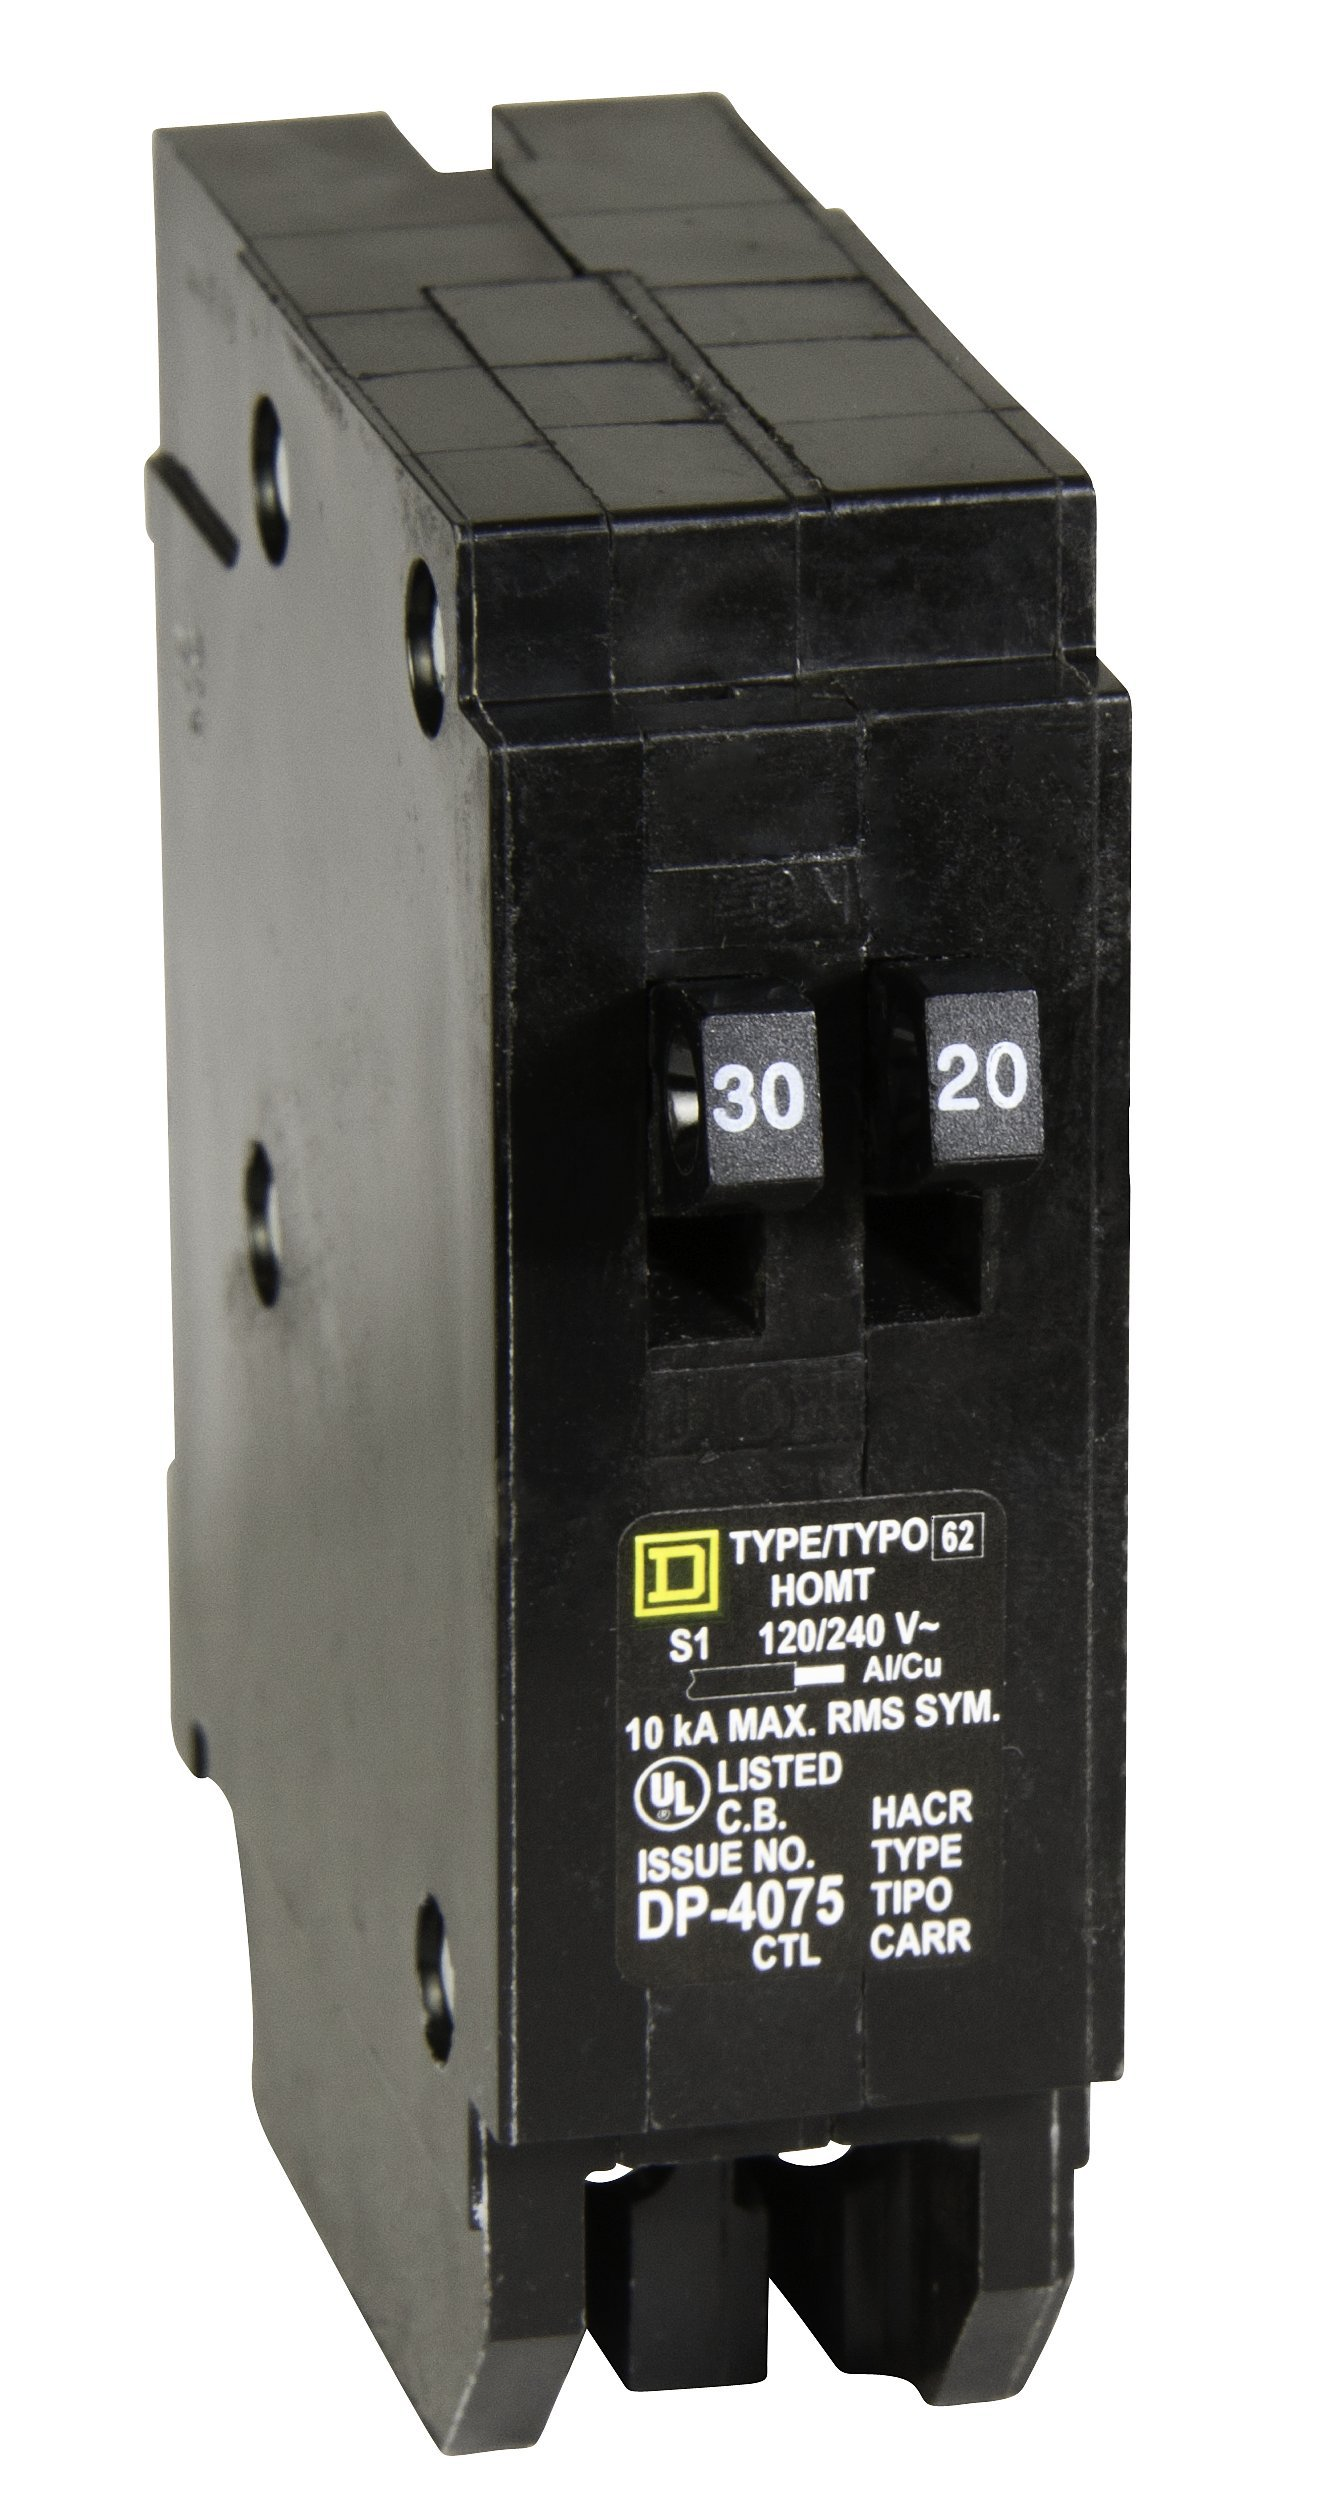 Best Rated In Ground Fault Circuit Interrupters Helpful Customer Bined Arc Interrupter And On Gfci Wiring With Square D By Schneider Electric Homt3020 Homeline 1 30 Amp 20 Single Pole Tandem Breaker